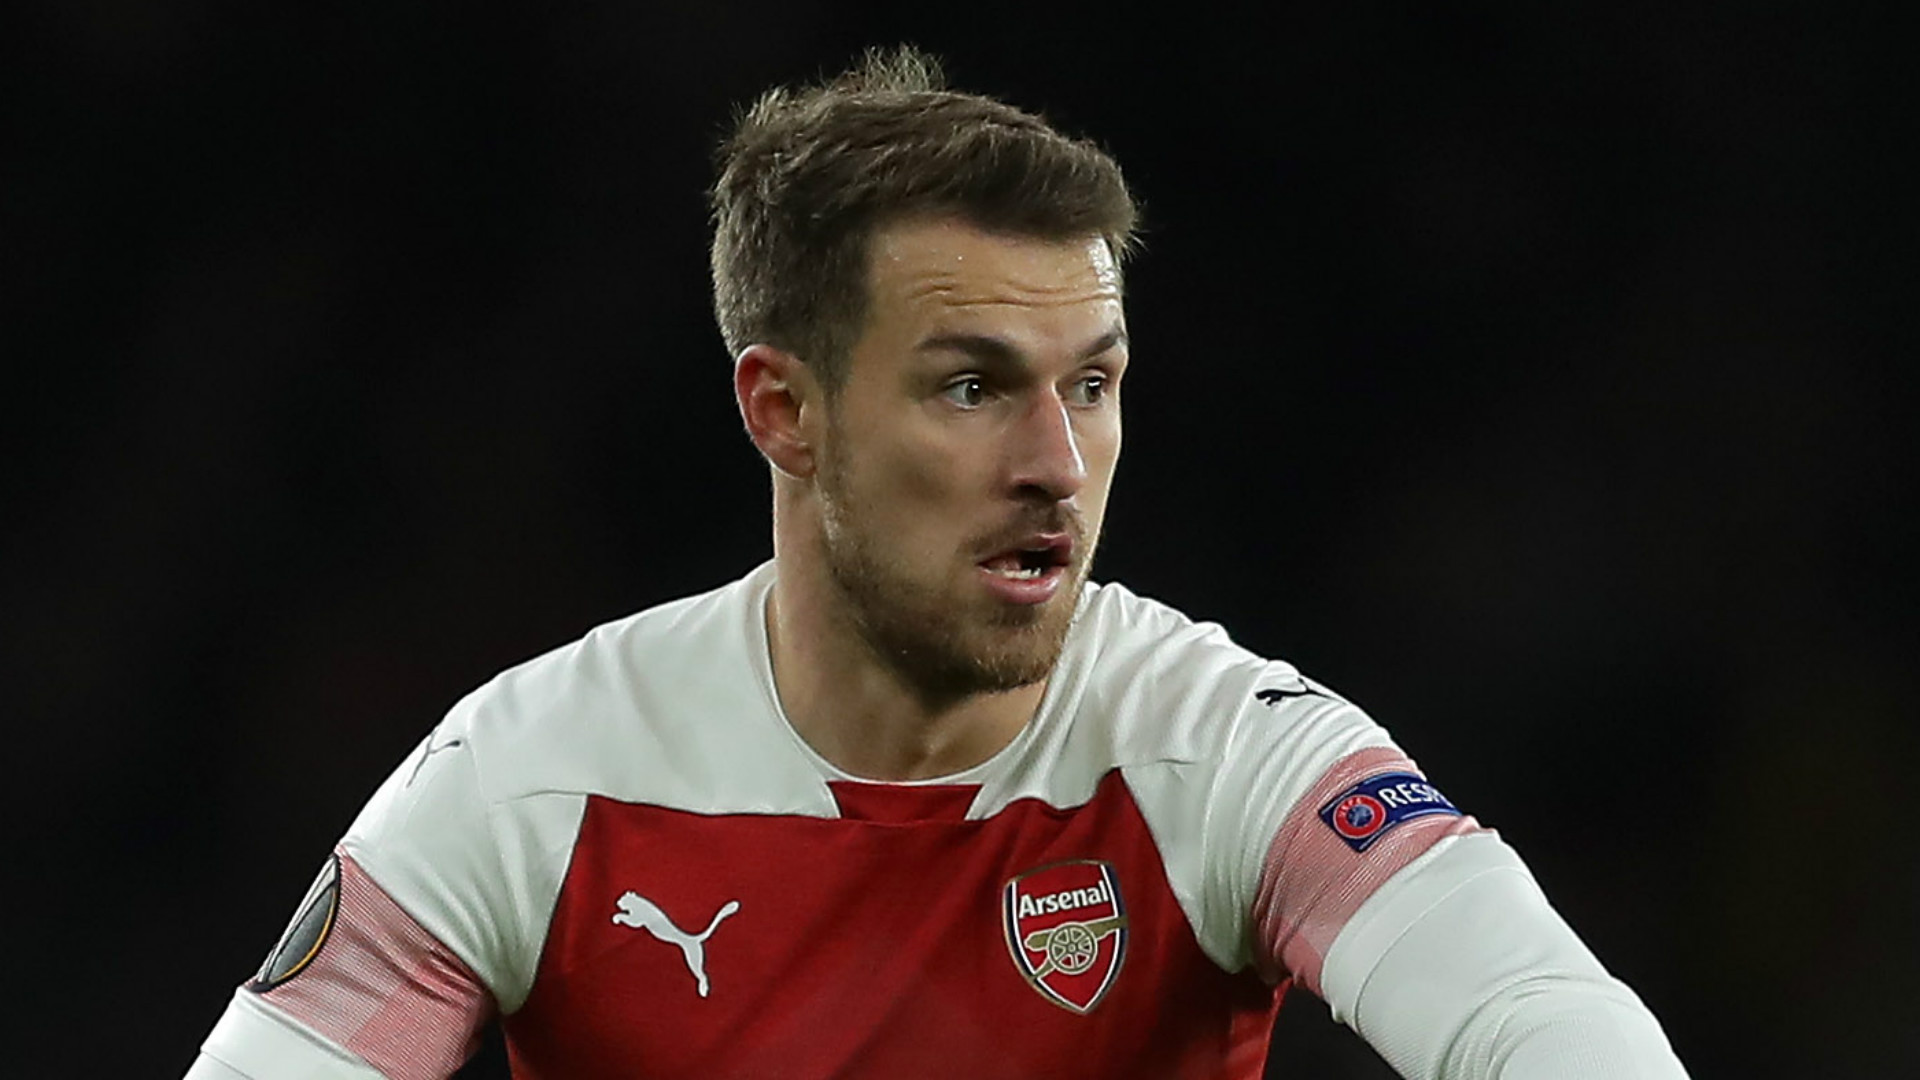 Aaron Ramsey Arsenal 2018-19